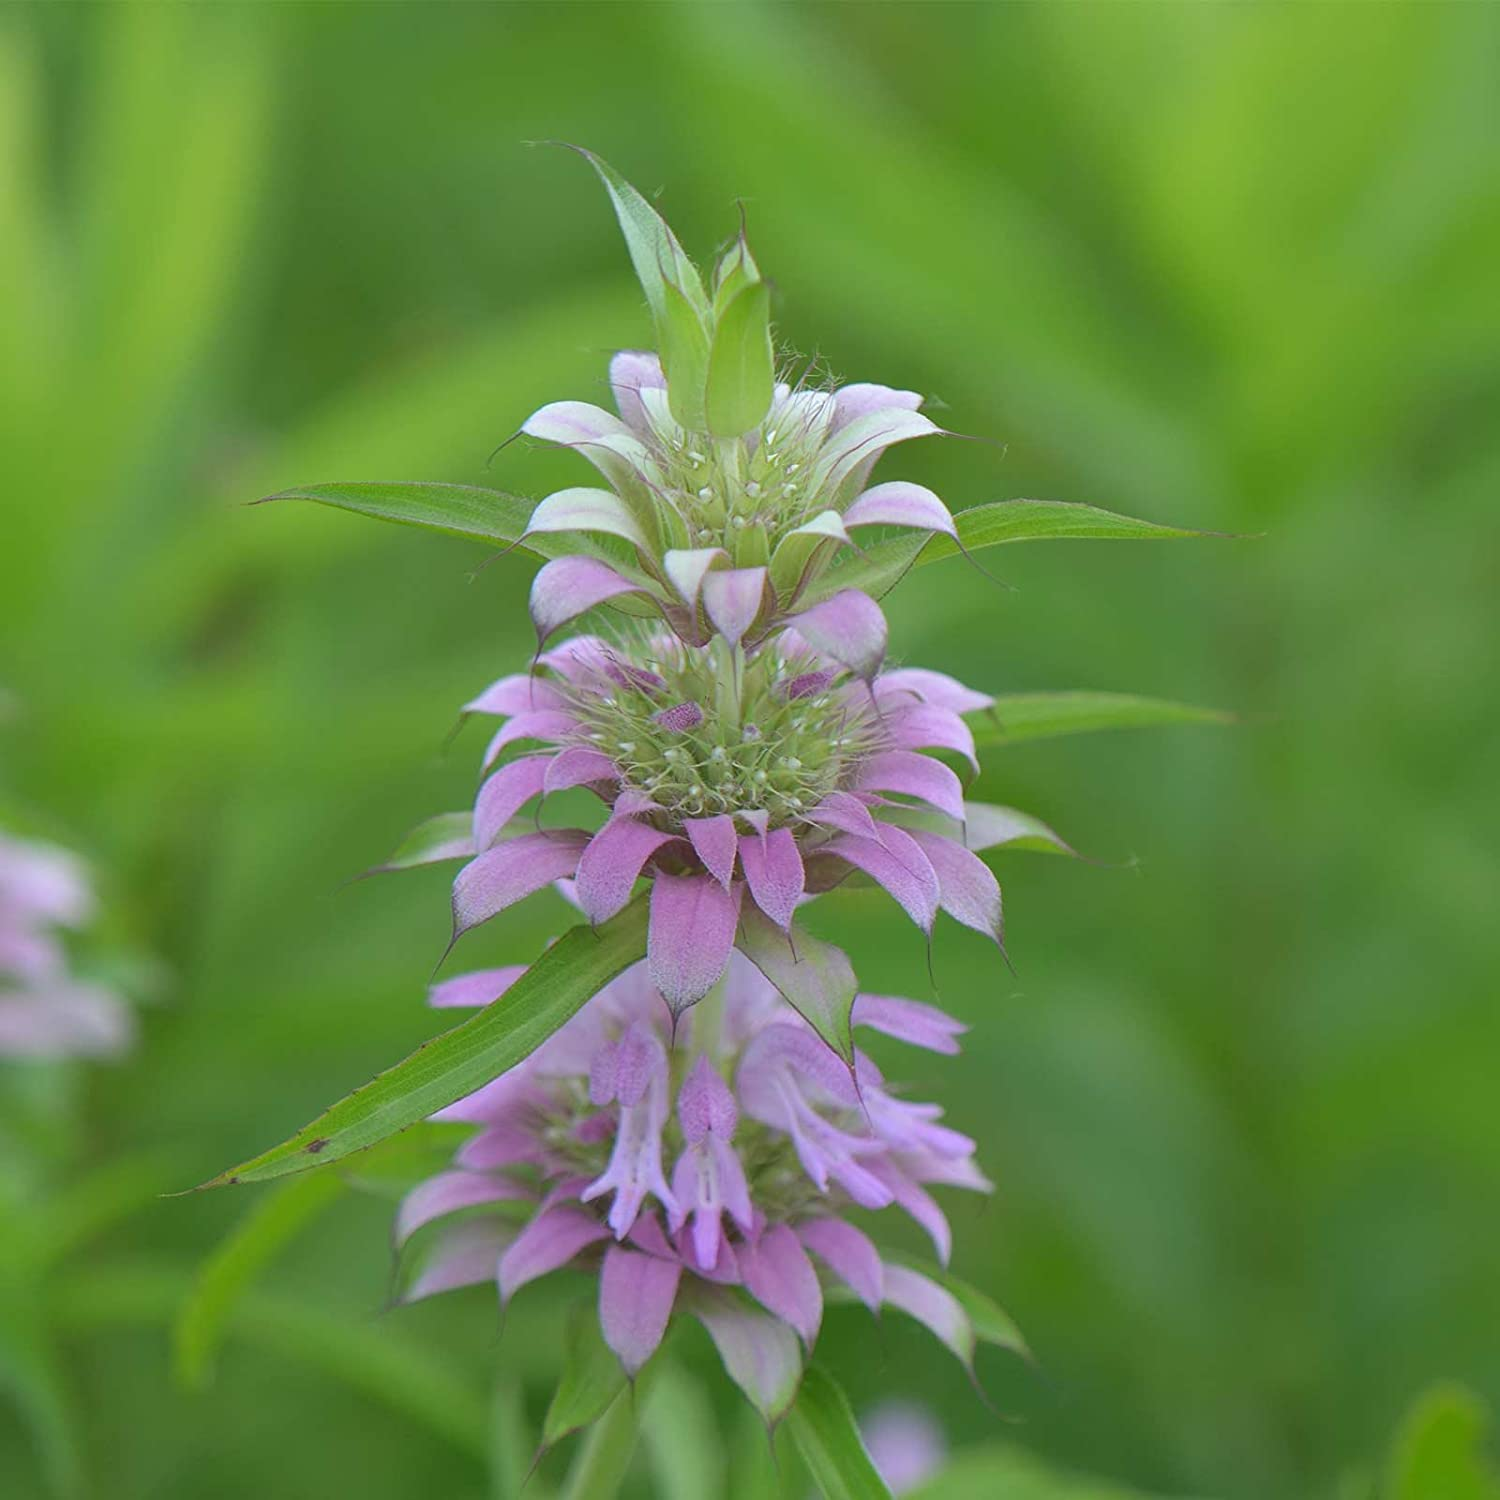 Lemon Mint Herb Garden Seeds - 1 Oz - Non-GMO, Heirloom Culinary Herbal Gardening Seeds - Monarda citriodora